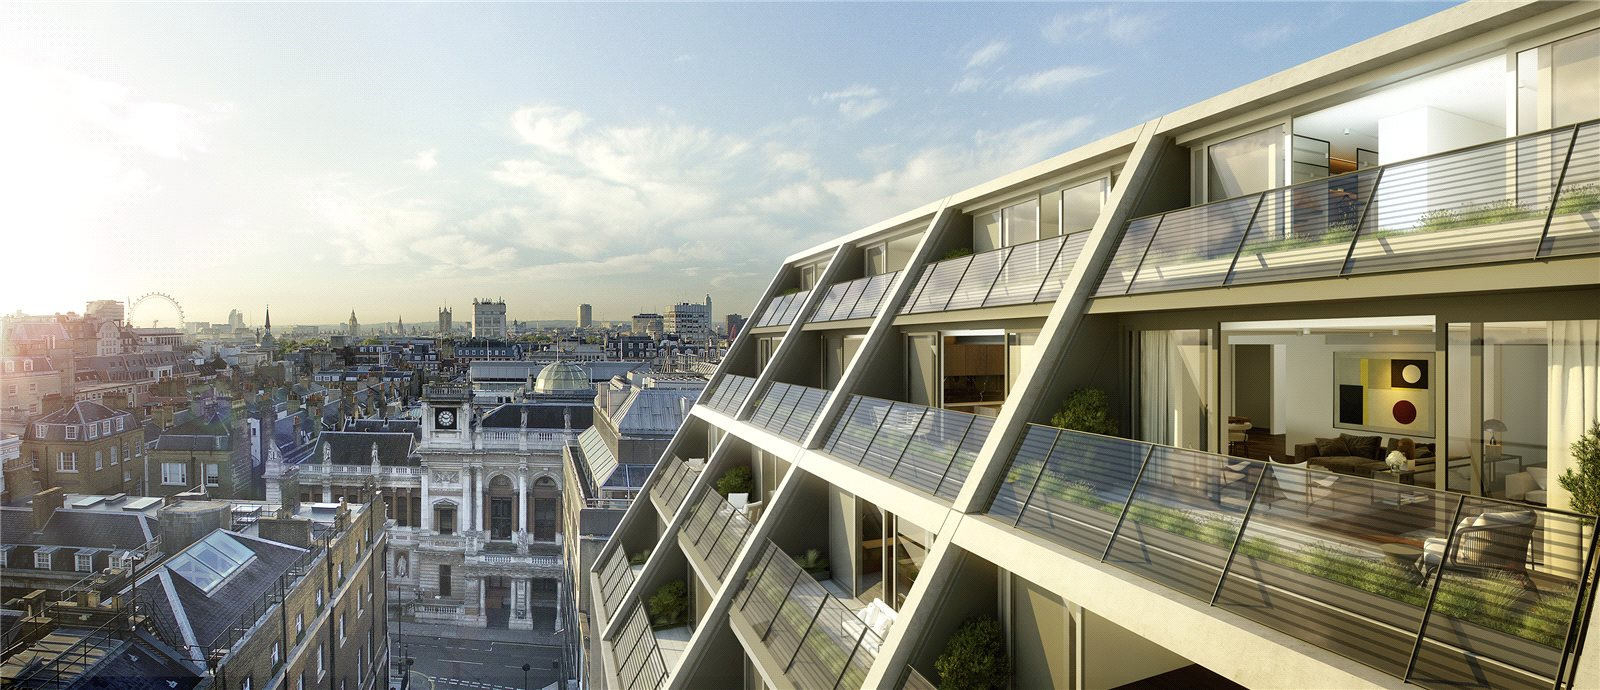 Mayfair's Luxury Quarter is the setting for this deluxe duplex penthouse. Two terraces and a roof deck provide a bird's-eye view of Big Ben, the London Eye, and a city of landmarks.